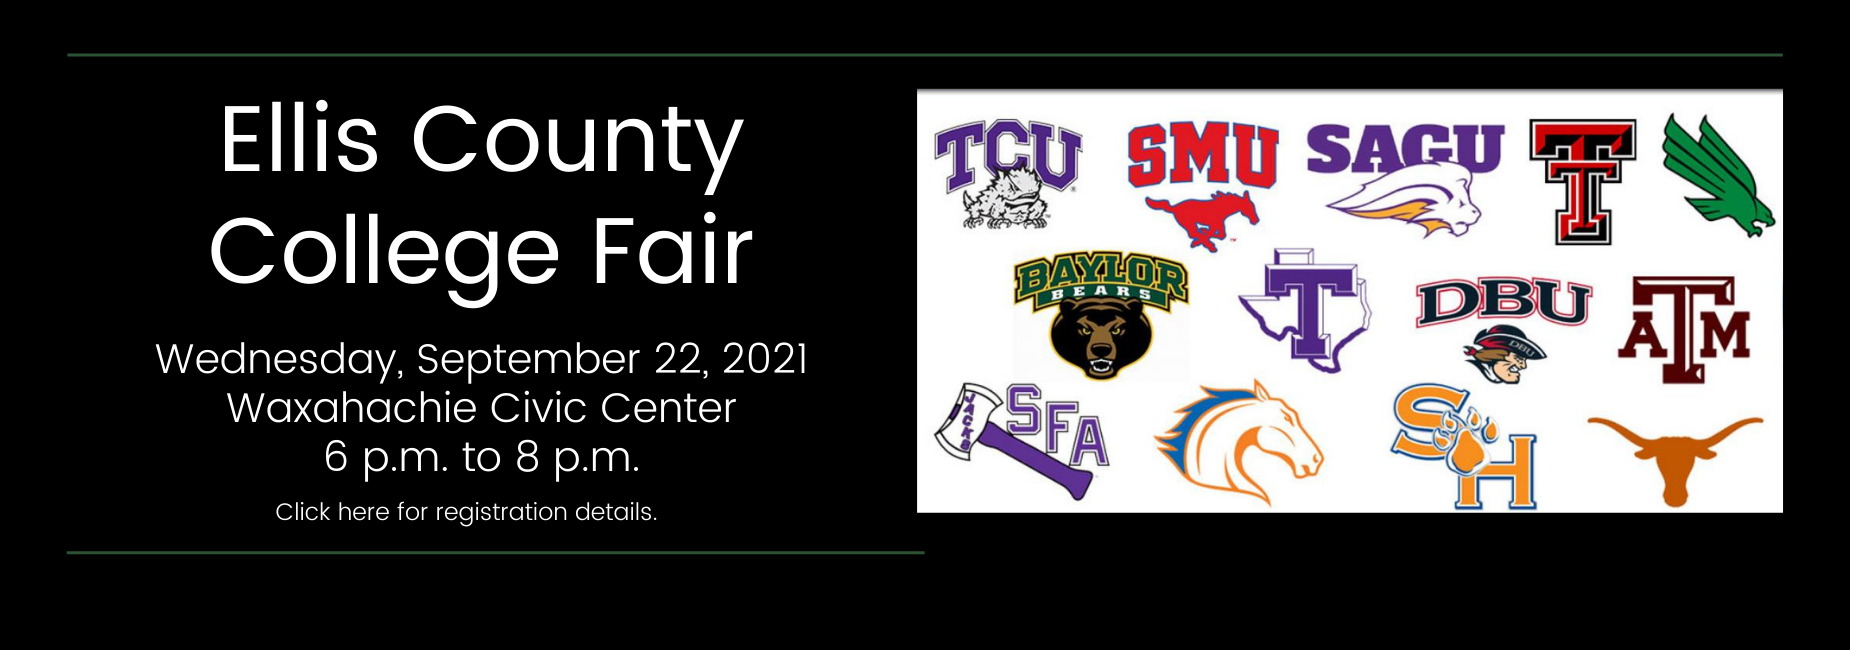 graphic with various Texas university logos describes the Ellis County College Fair is on September 22 at the Waxahachie Civic Center from 6 to 8